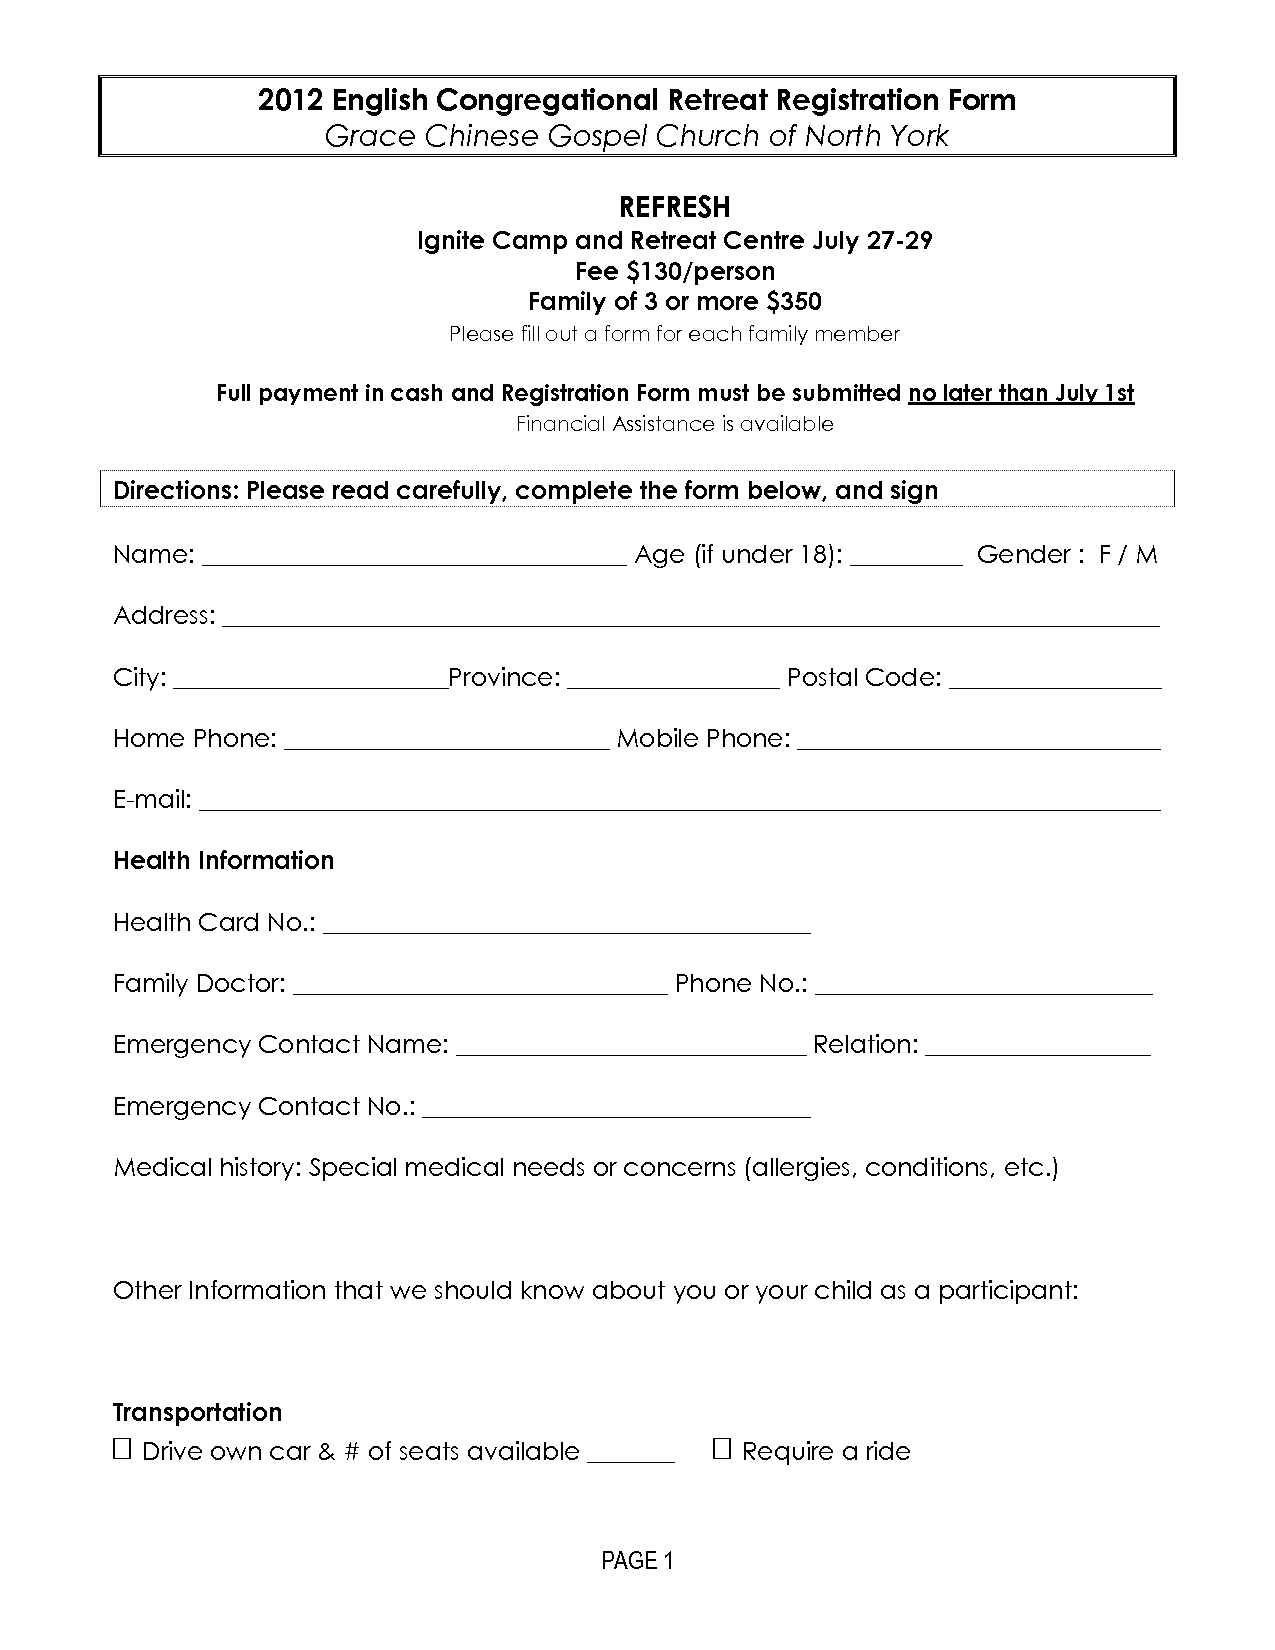 retreat+registration+forms | Retreat Registration Form Template ...